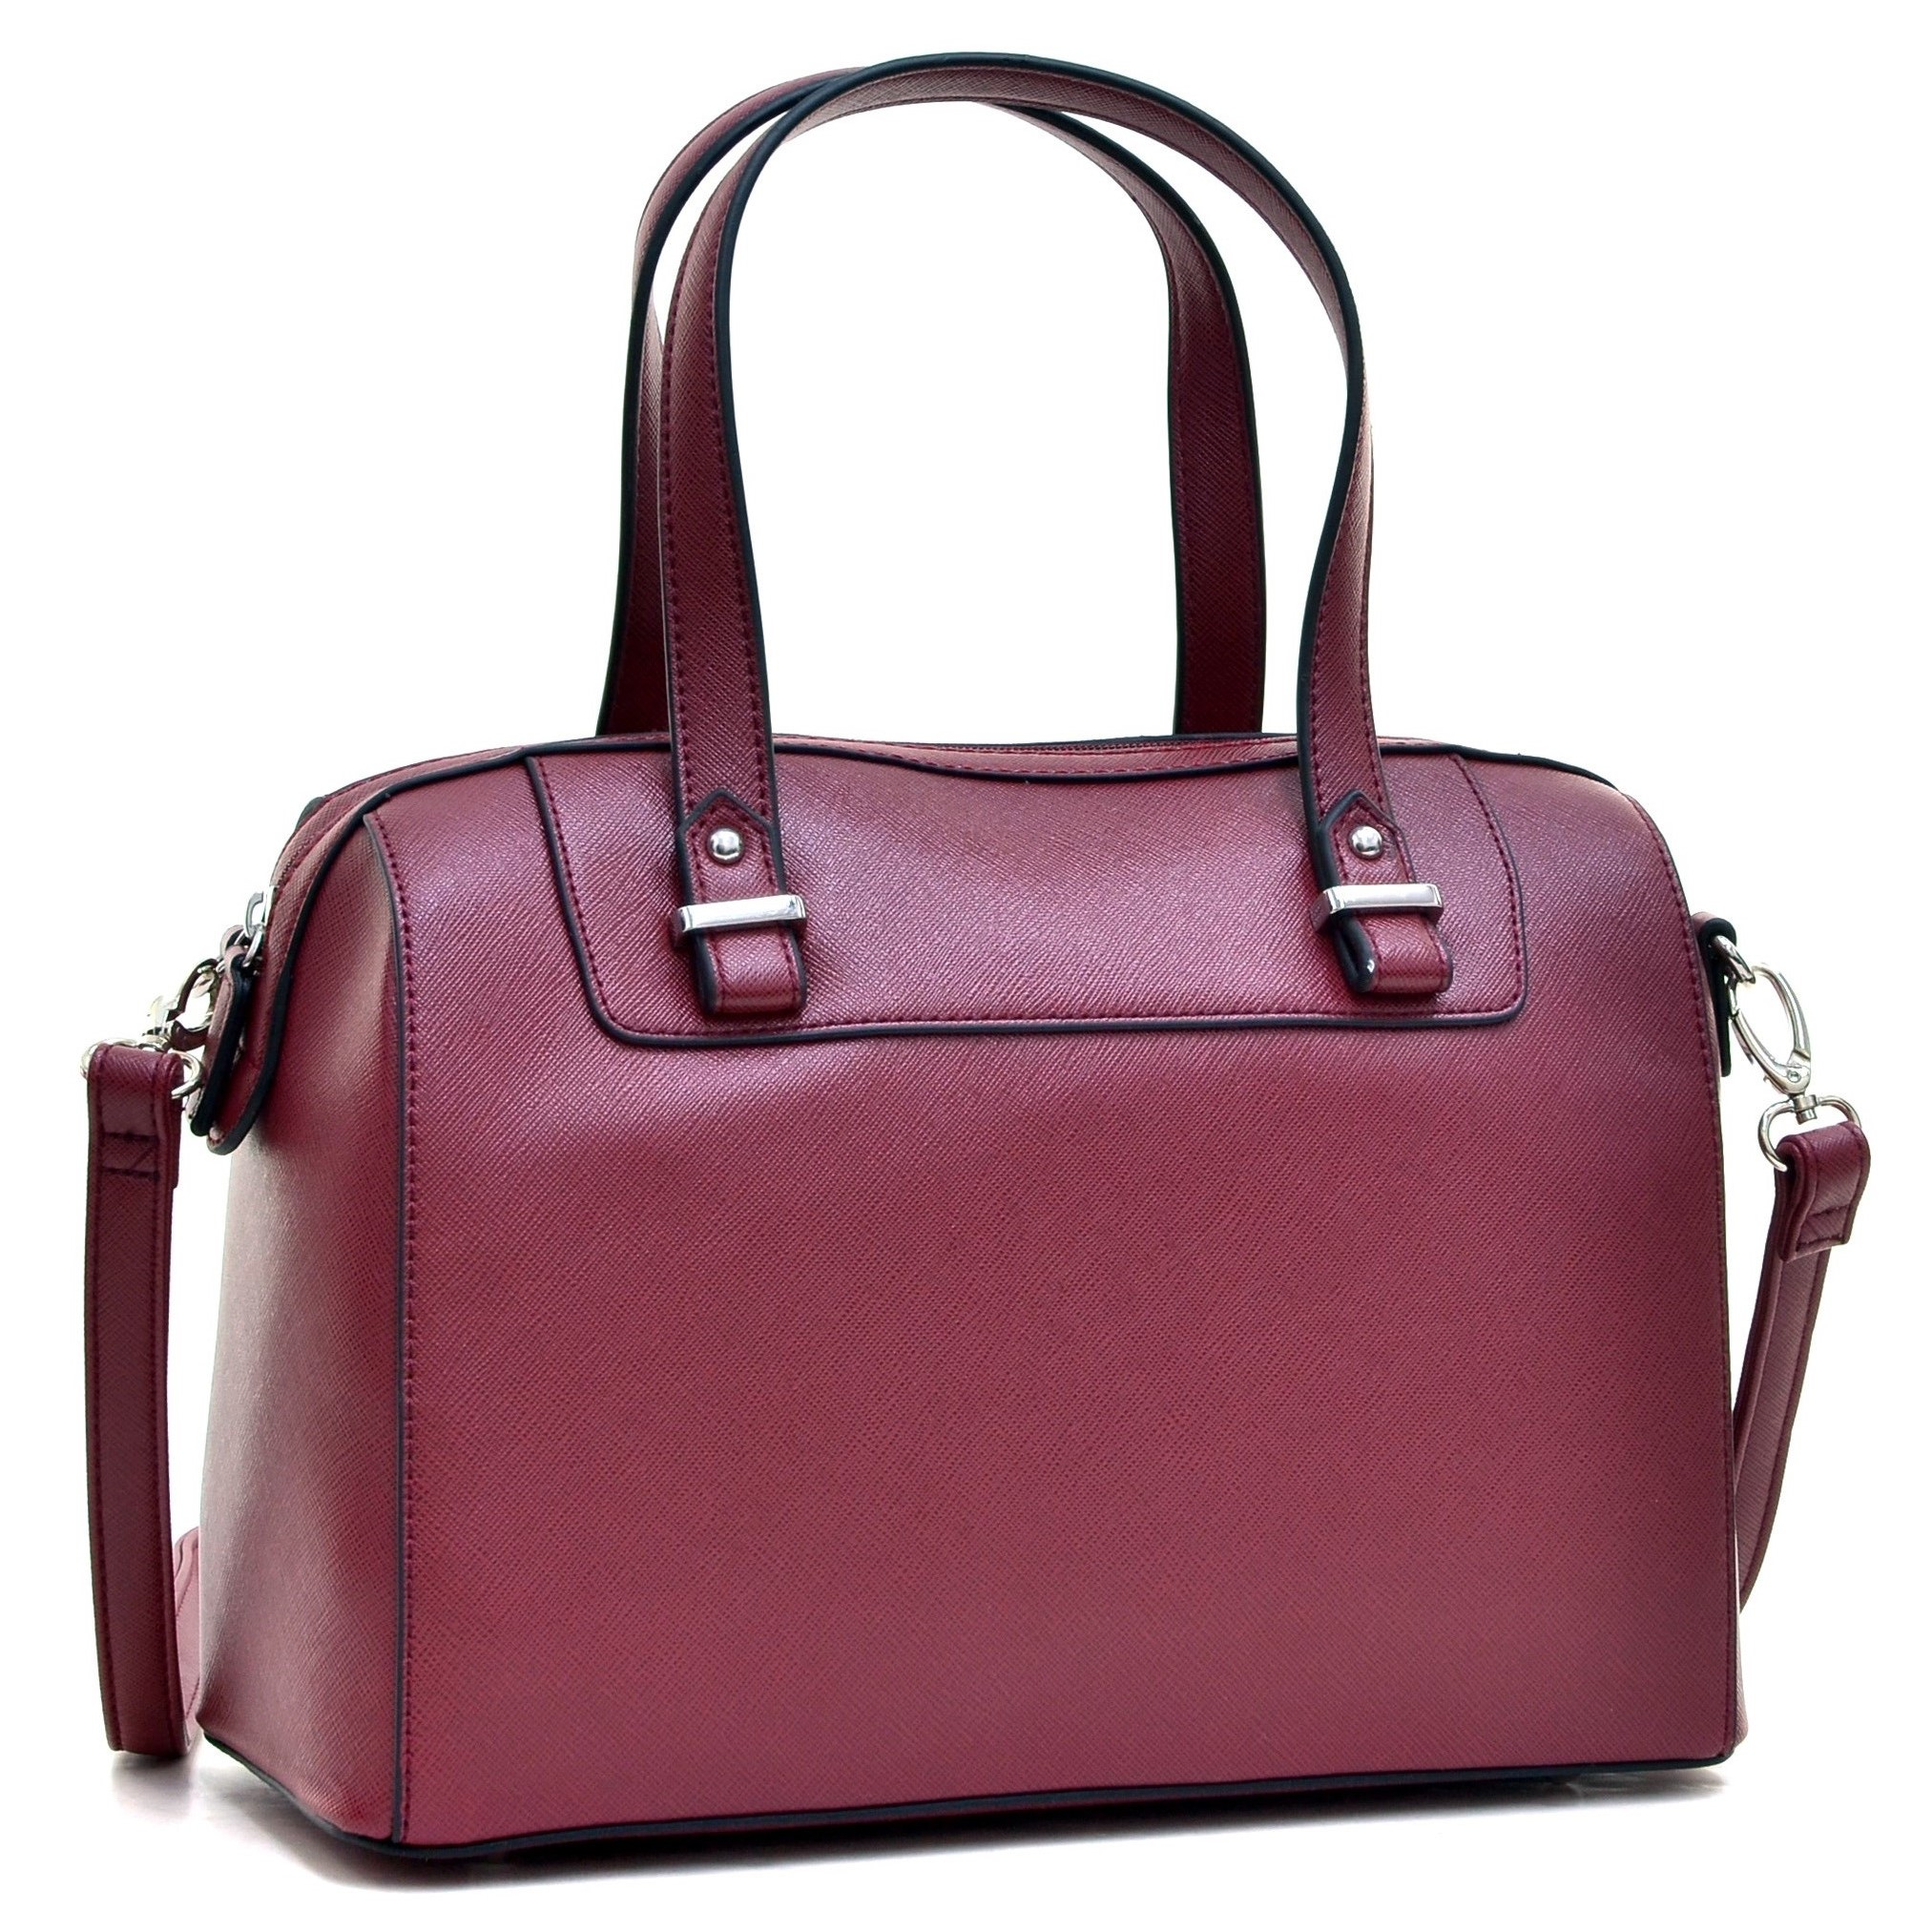 Dasein® Barrel Body Satchel with Removable Shoulder Strap